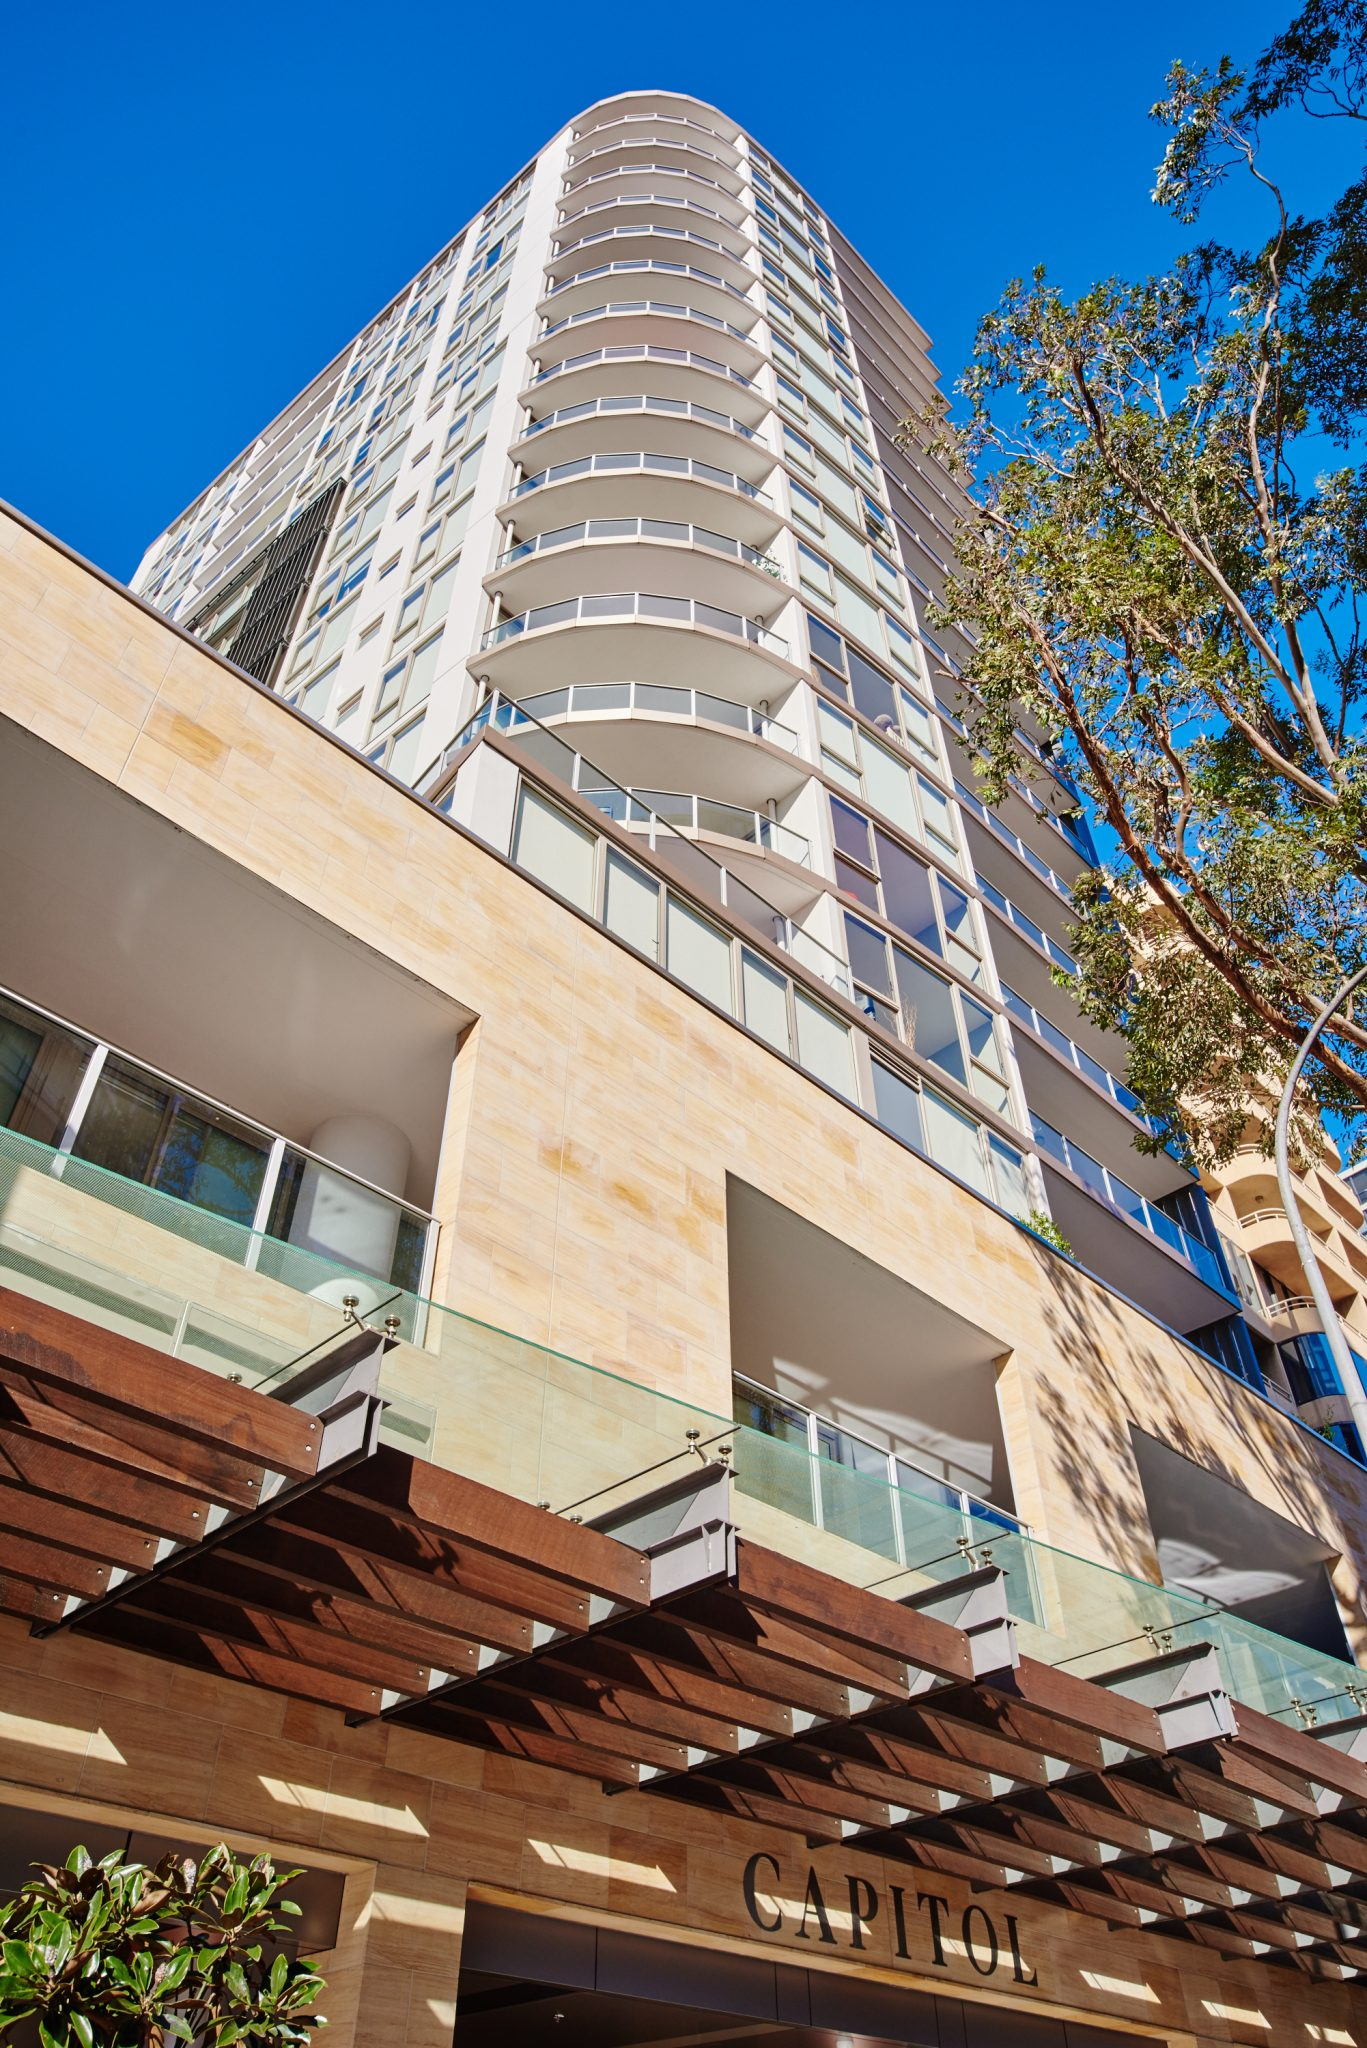 CAPITOL_BUILDING_BONDI_JUNCTION__DSC2530